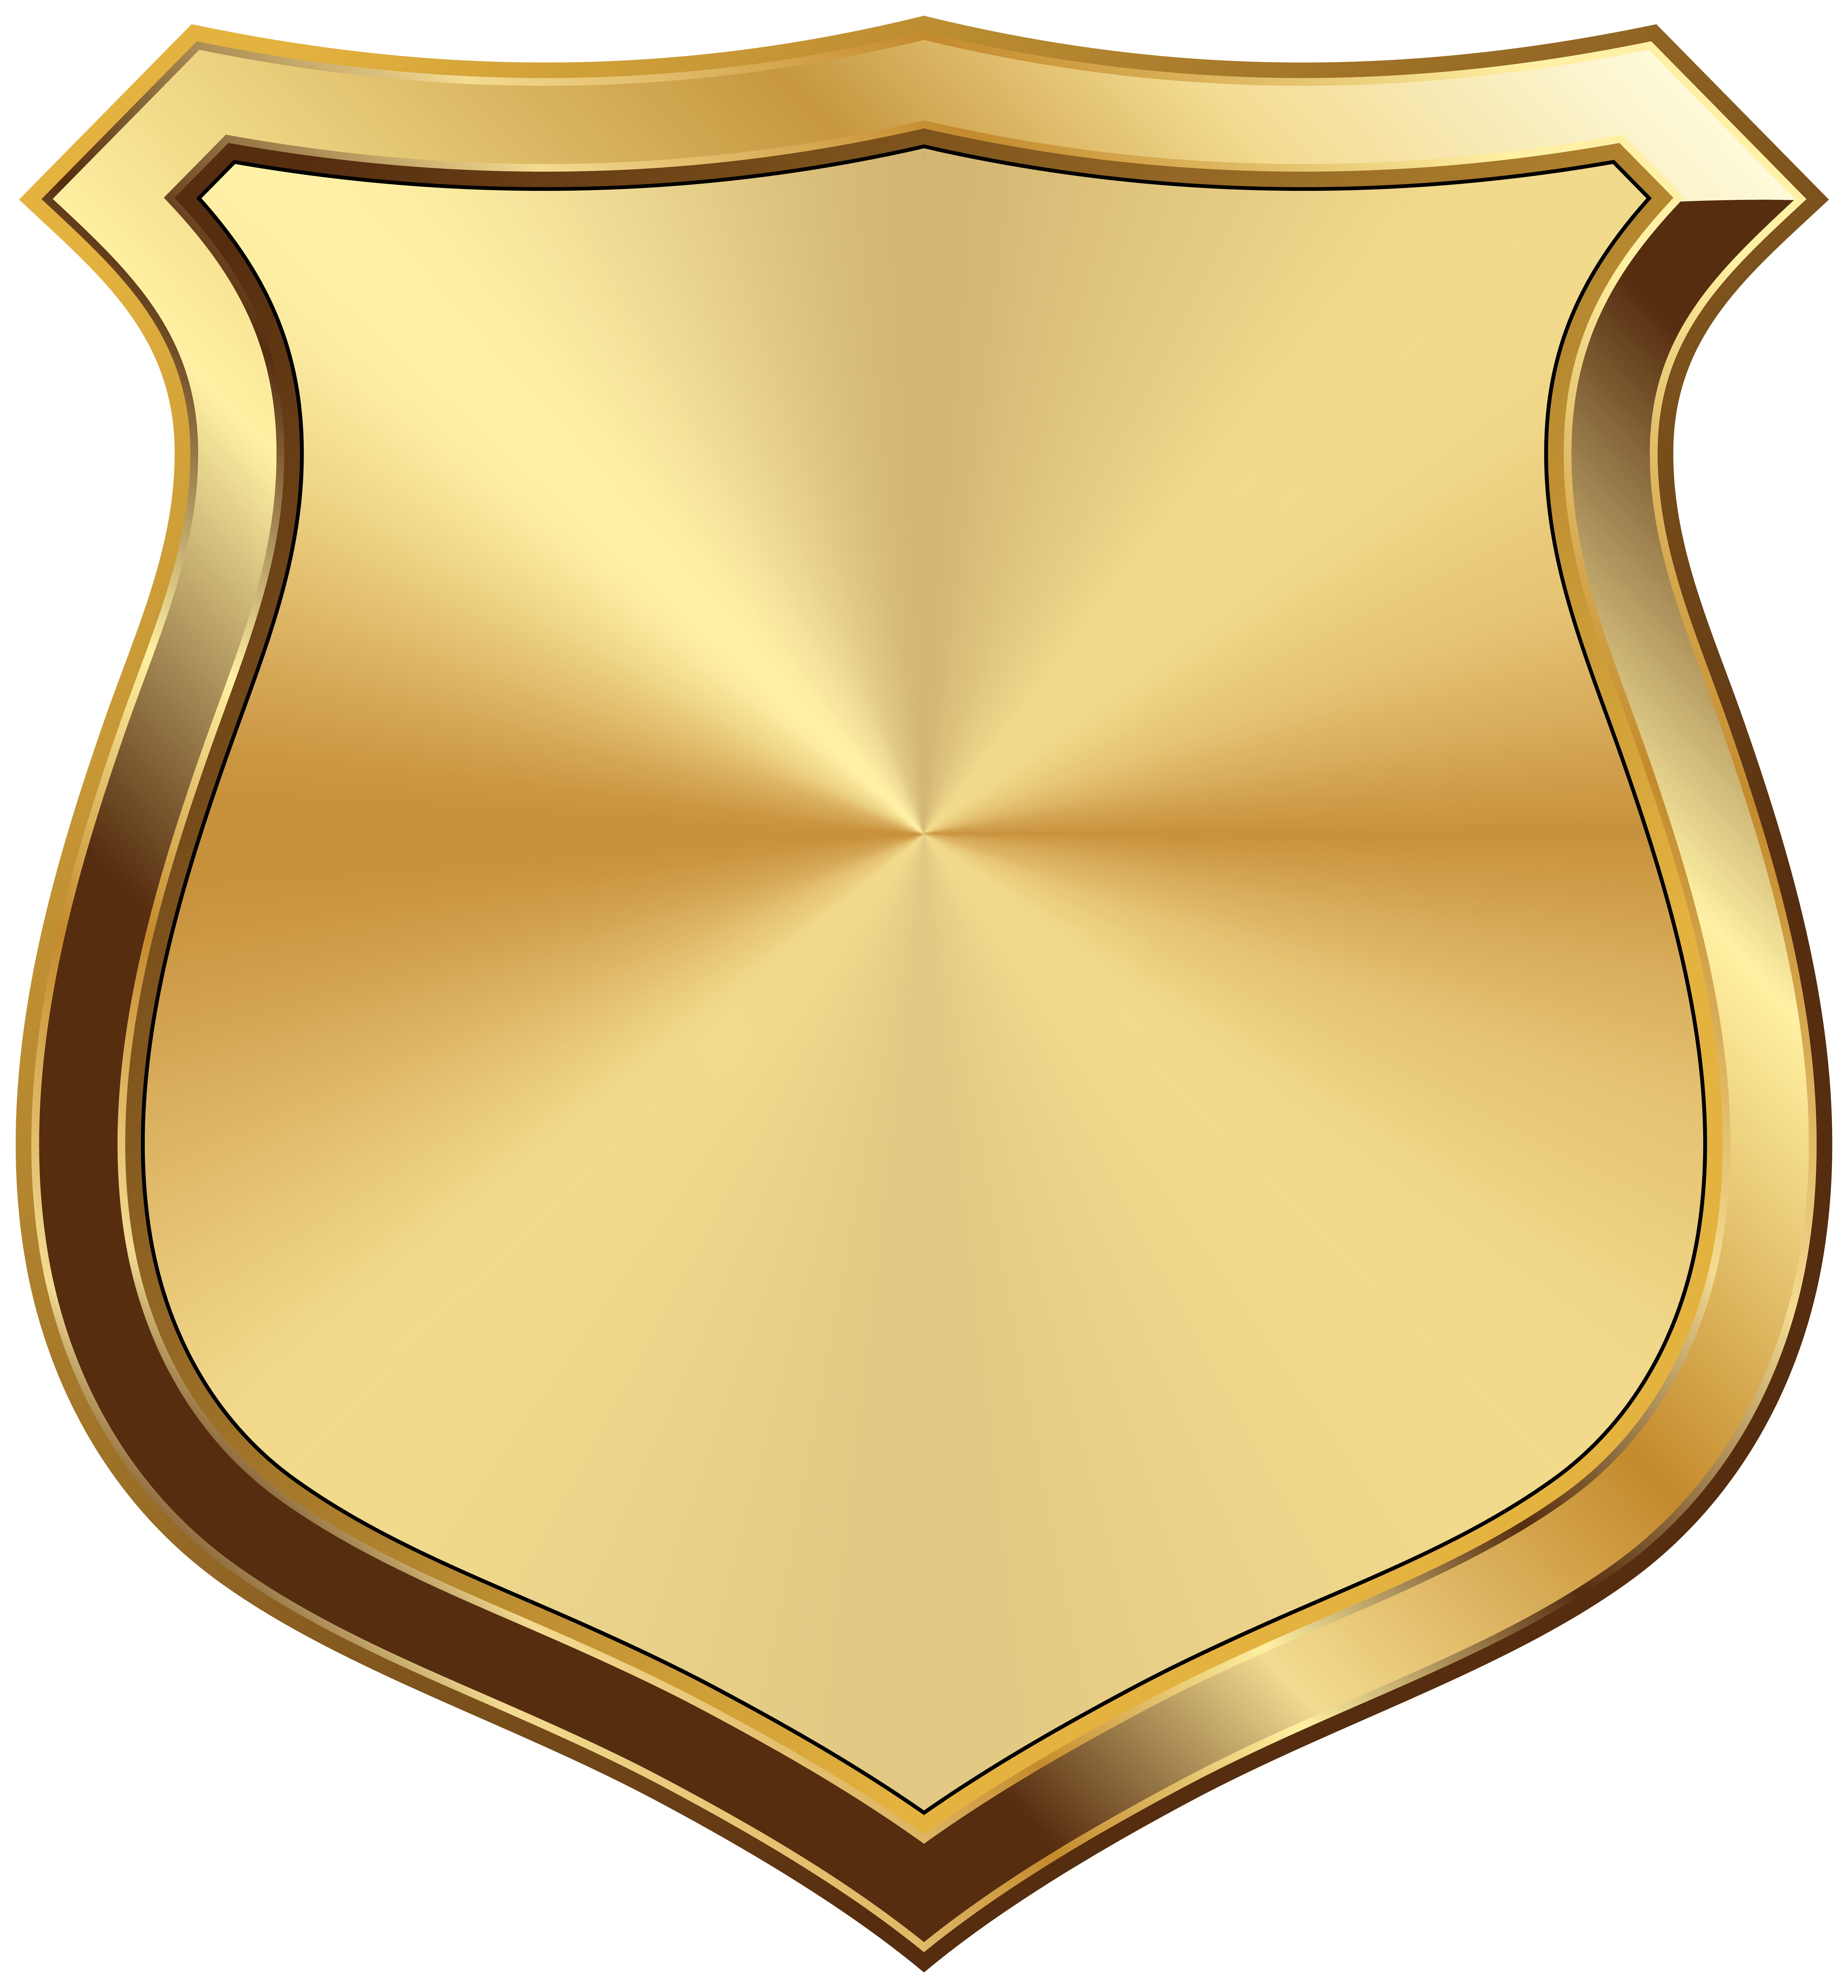 Gold Badge Transparent Image.